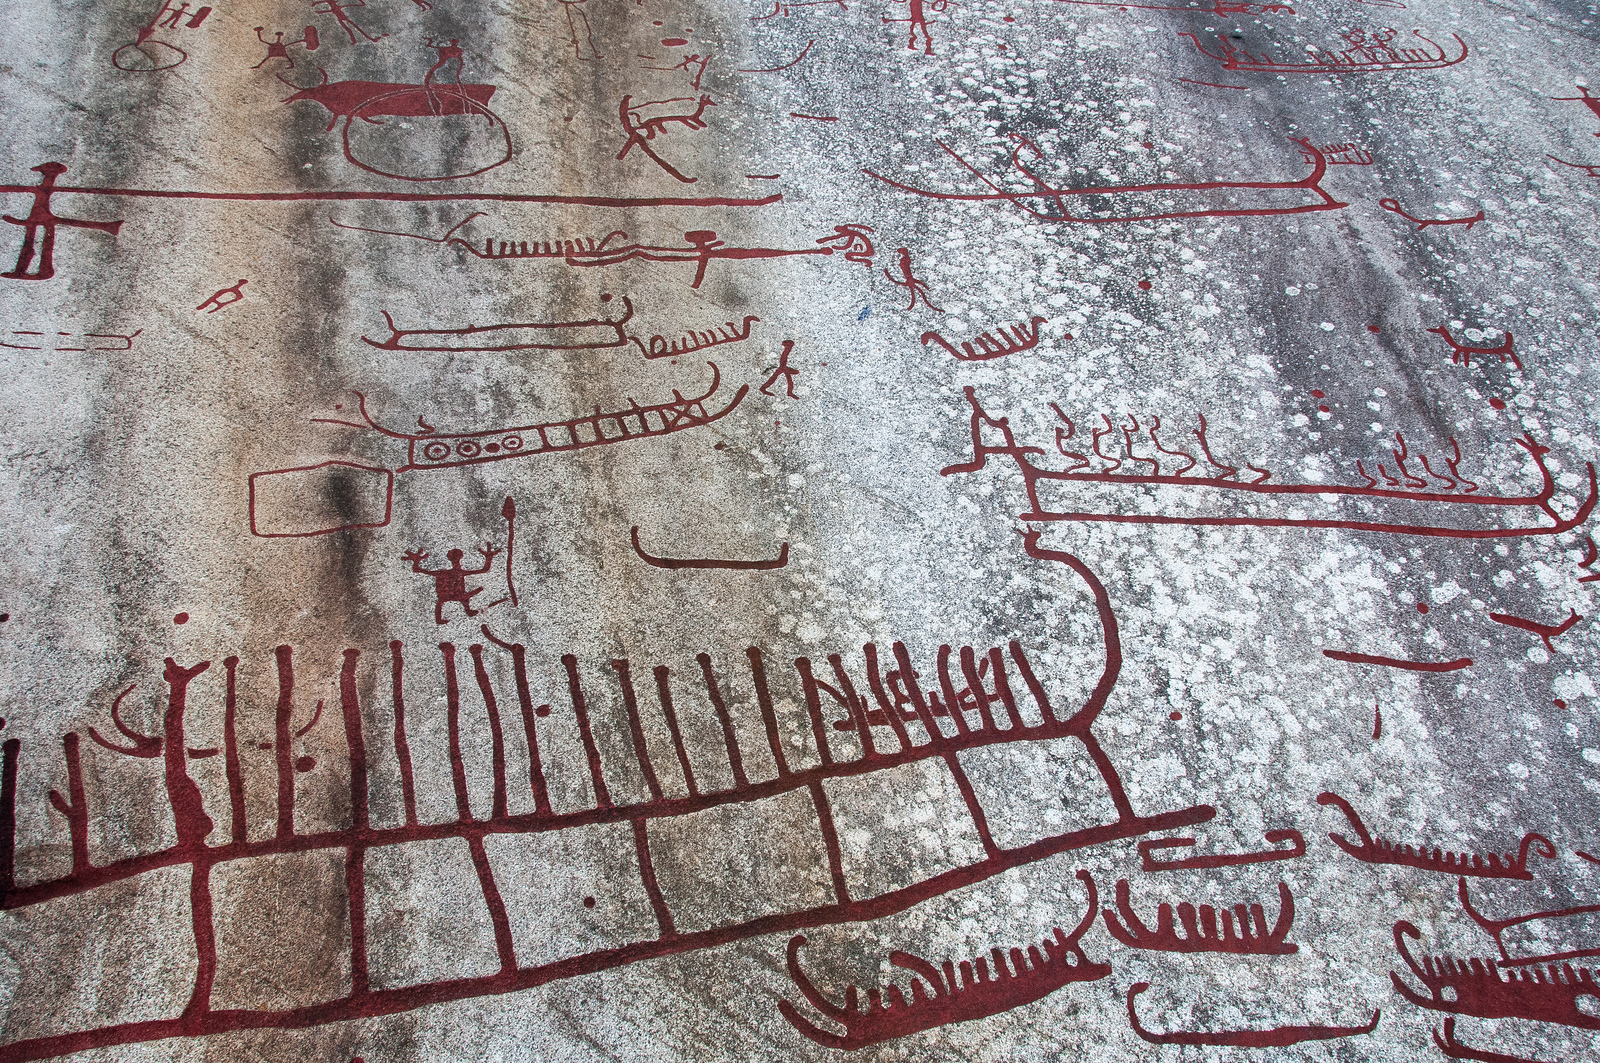 Rock Carvings in Tanum UNESCO World Heritage Site